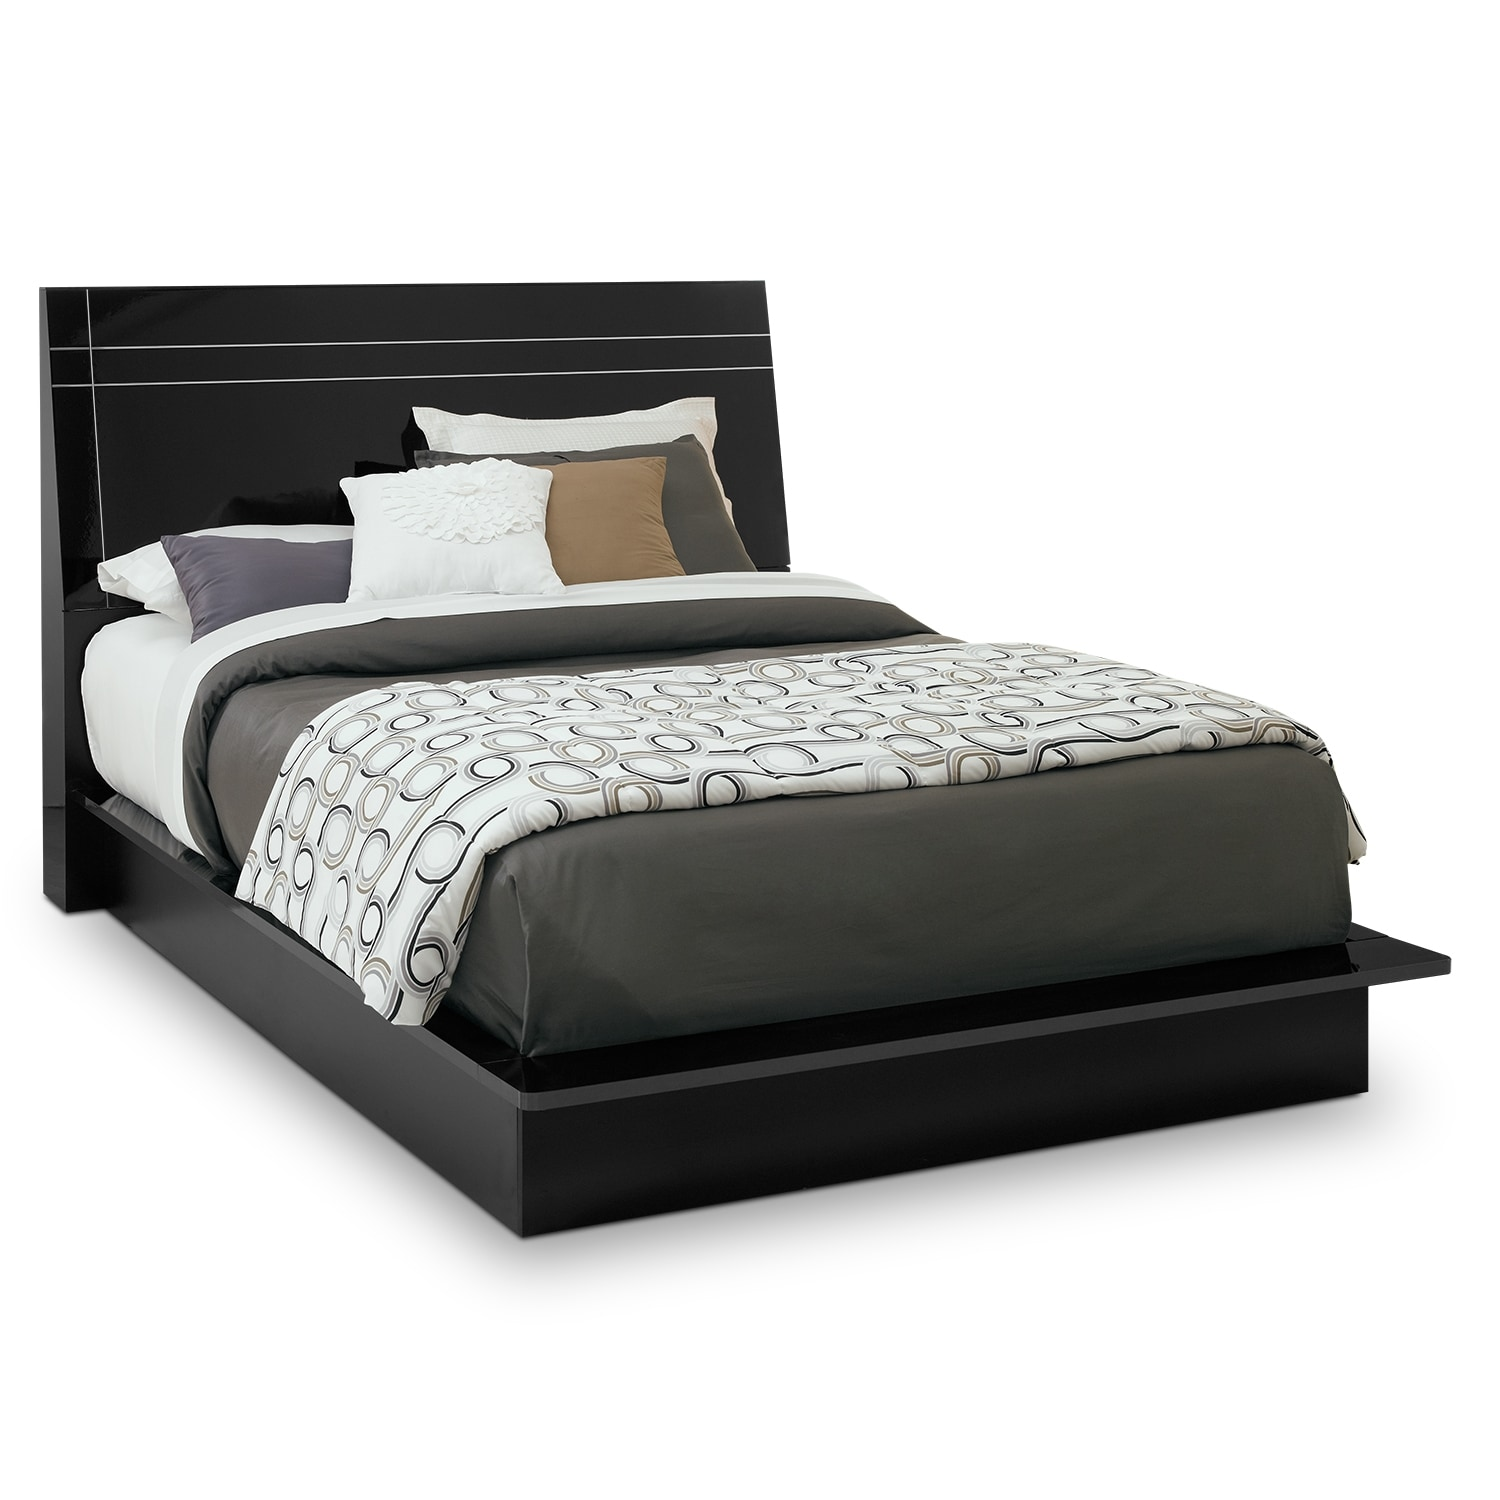 Dimora queen panel bed black american signature furniture for Bed set queen furniture